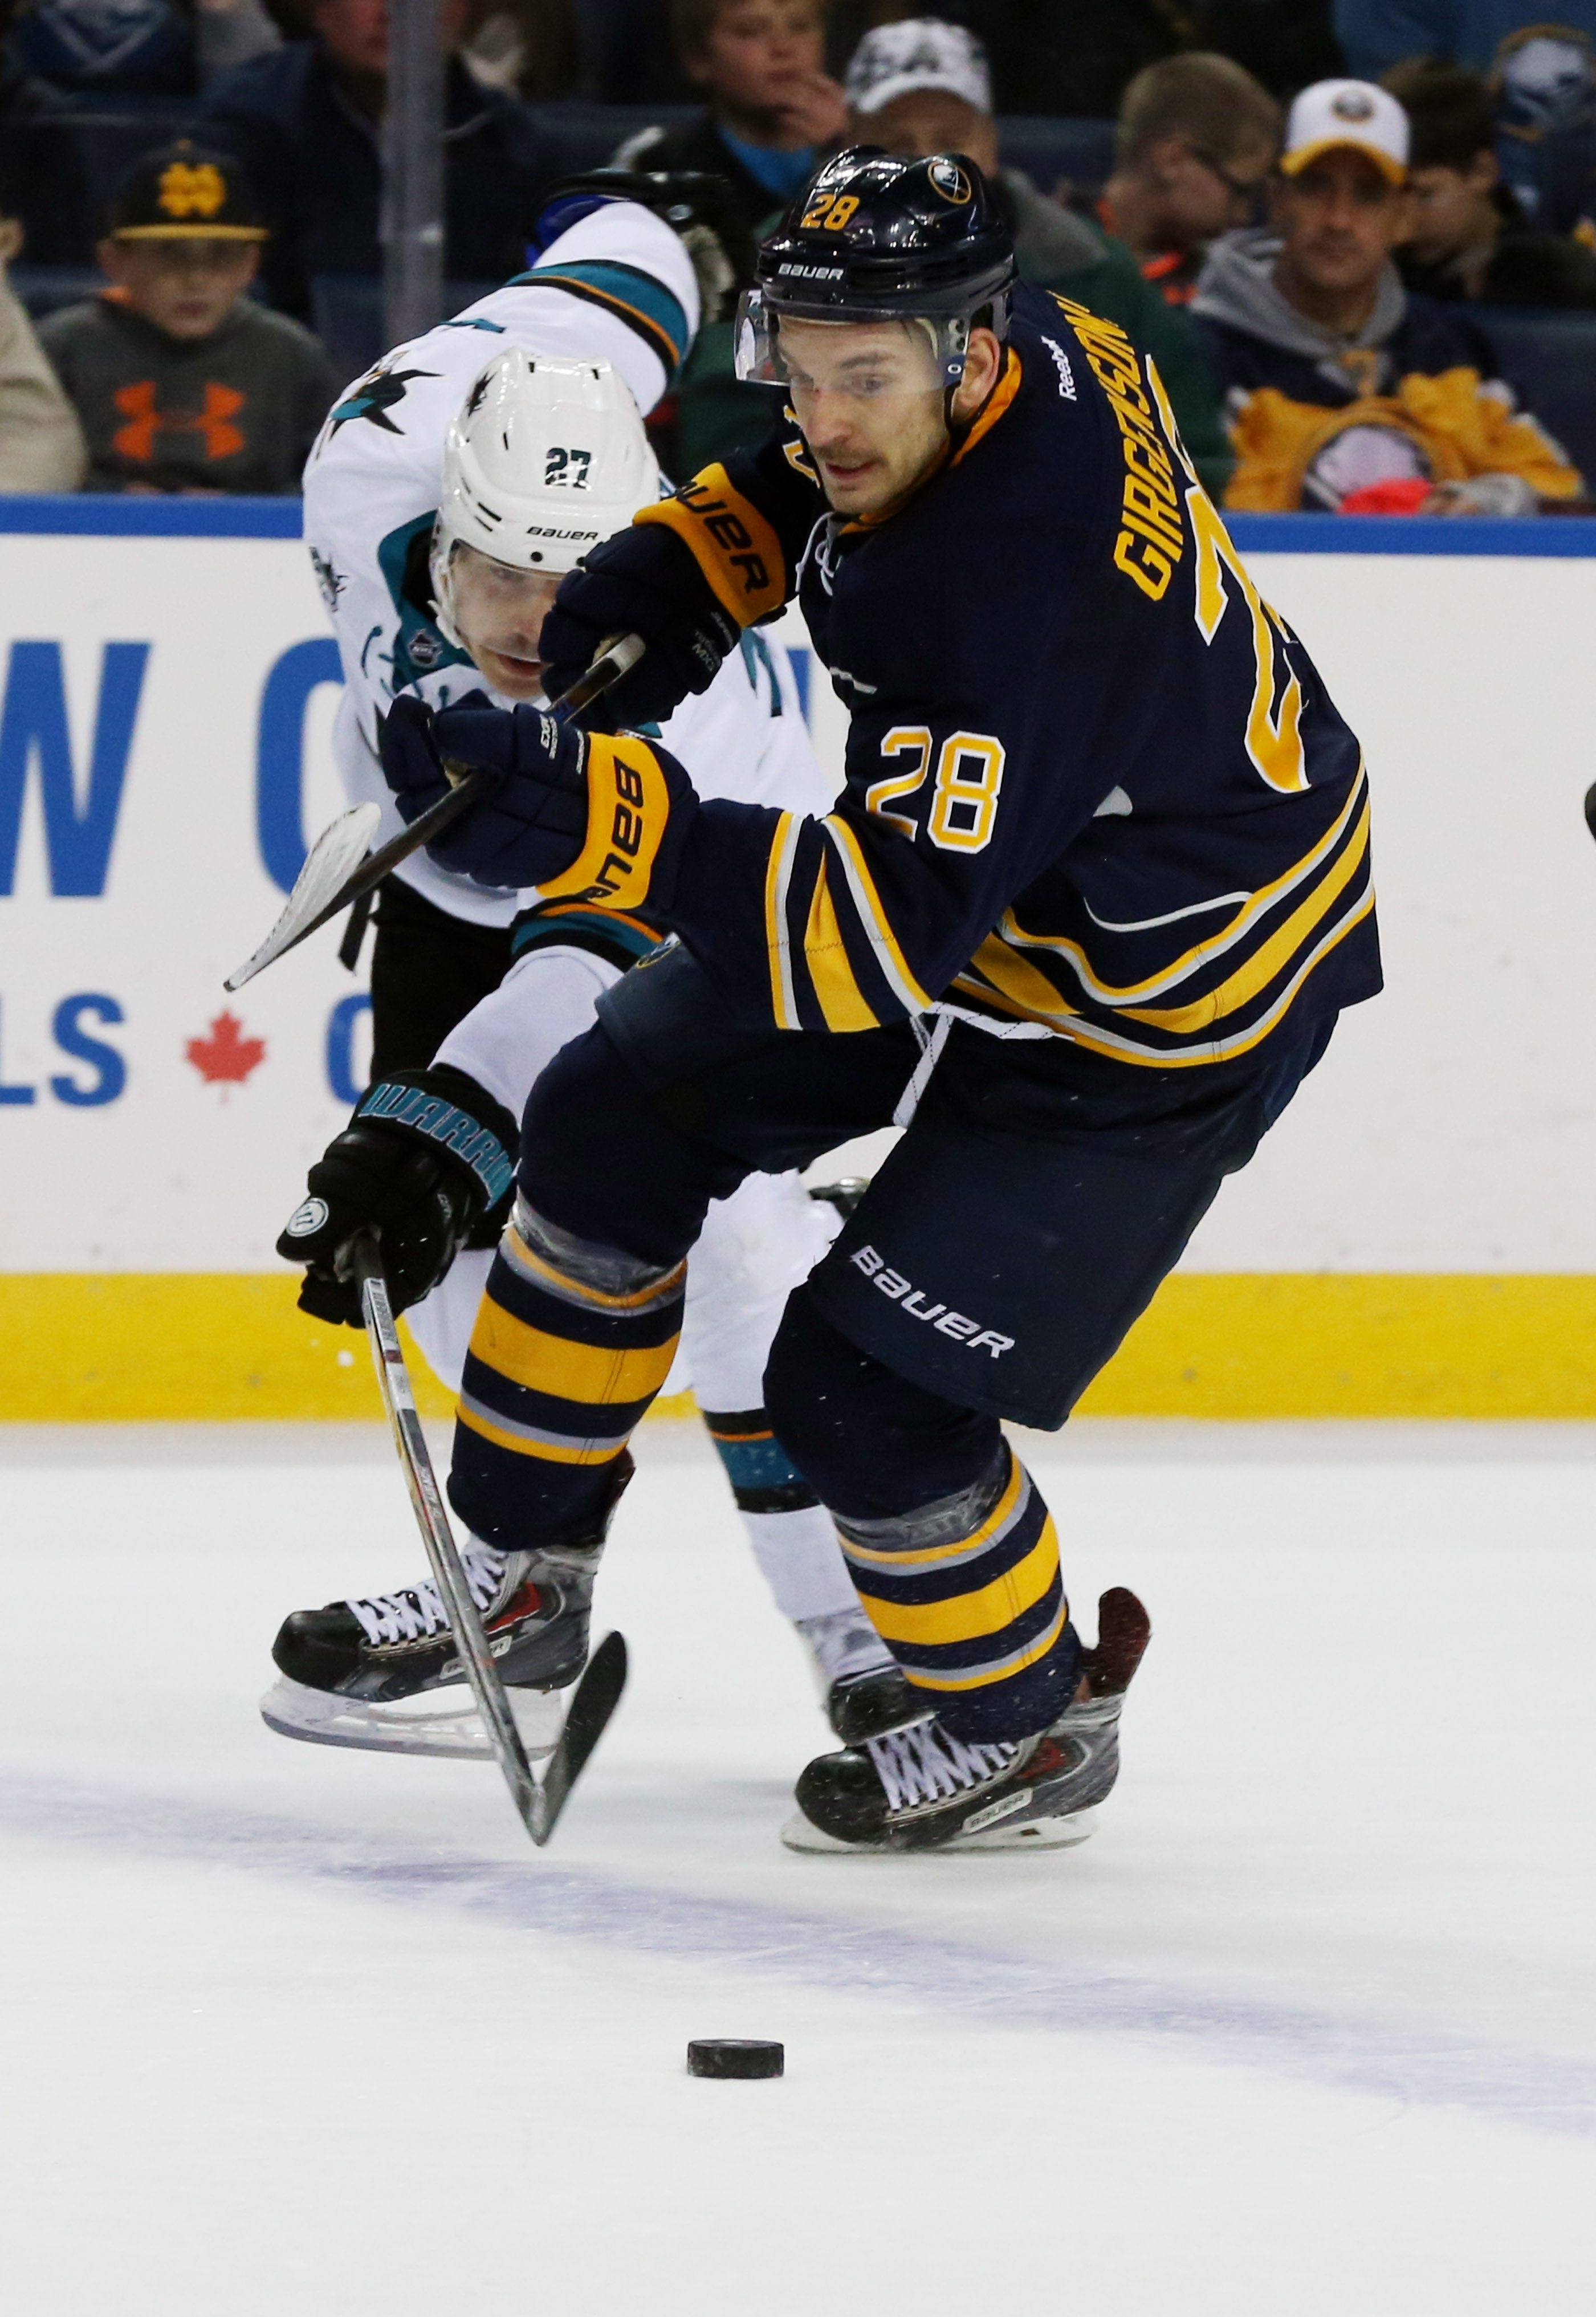 Zemgus Girgensons did not score any of his seven goals for the Sabres on home ice last season.